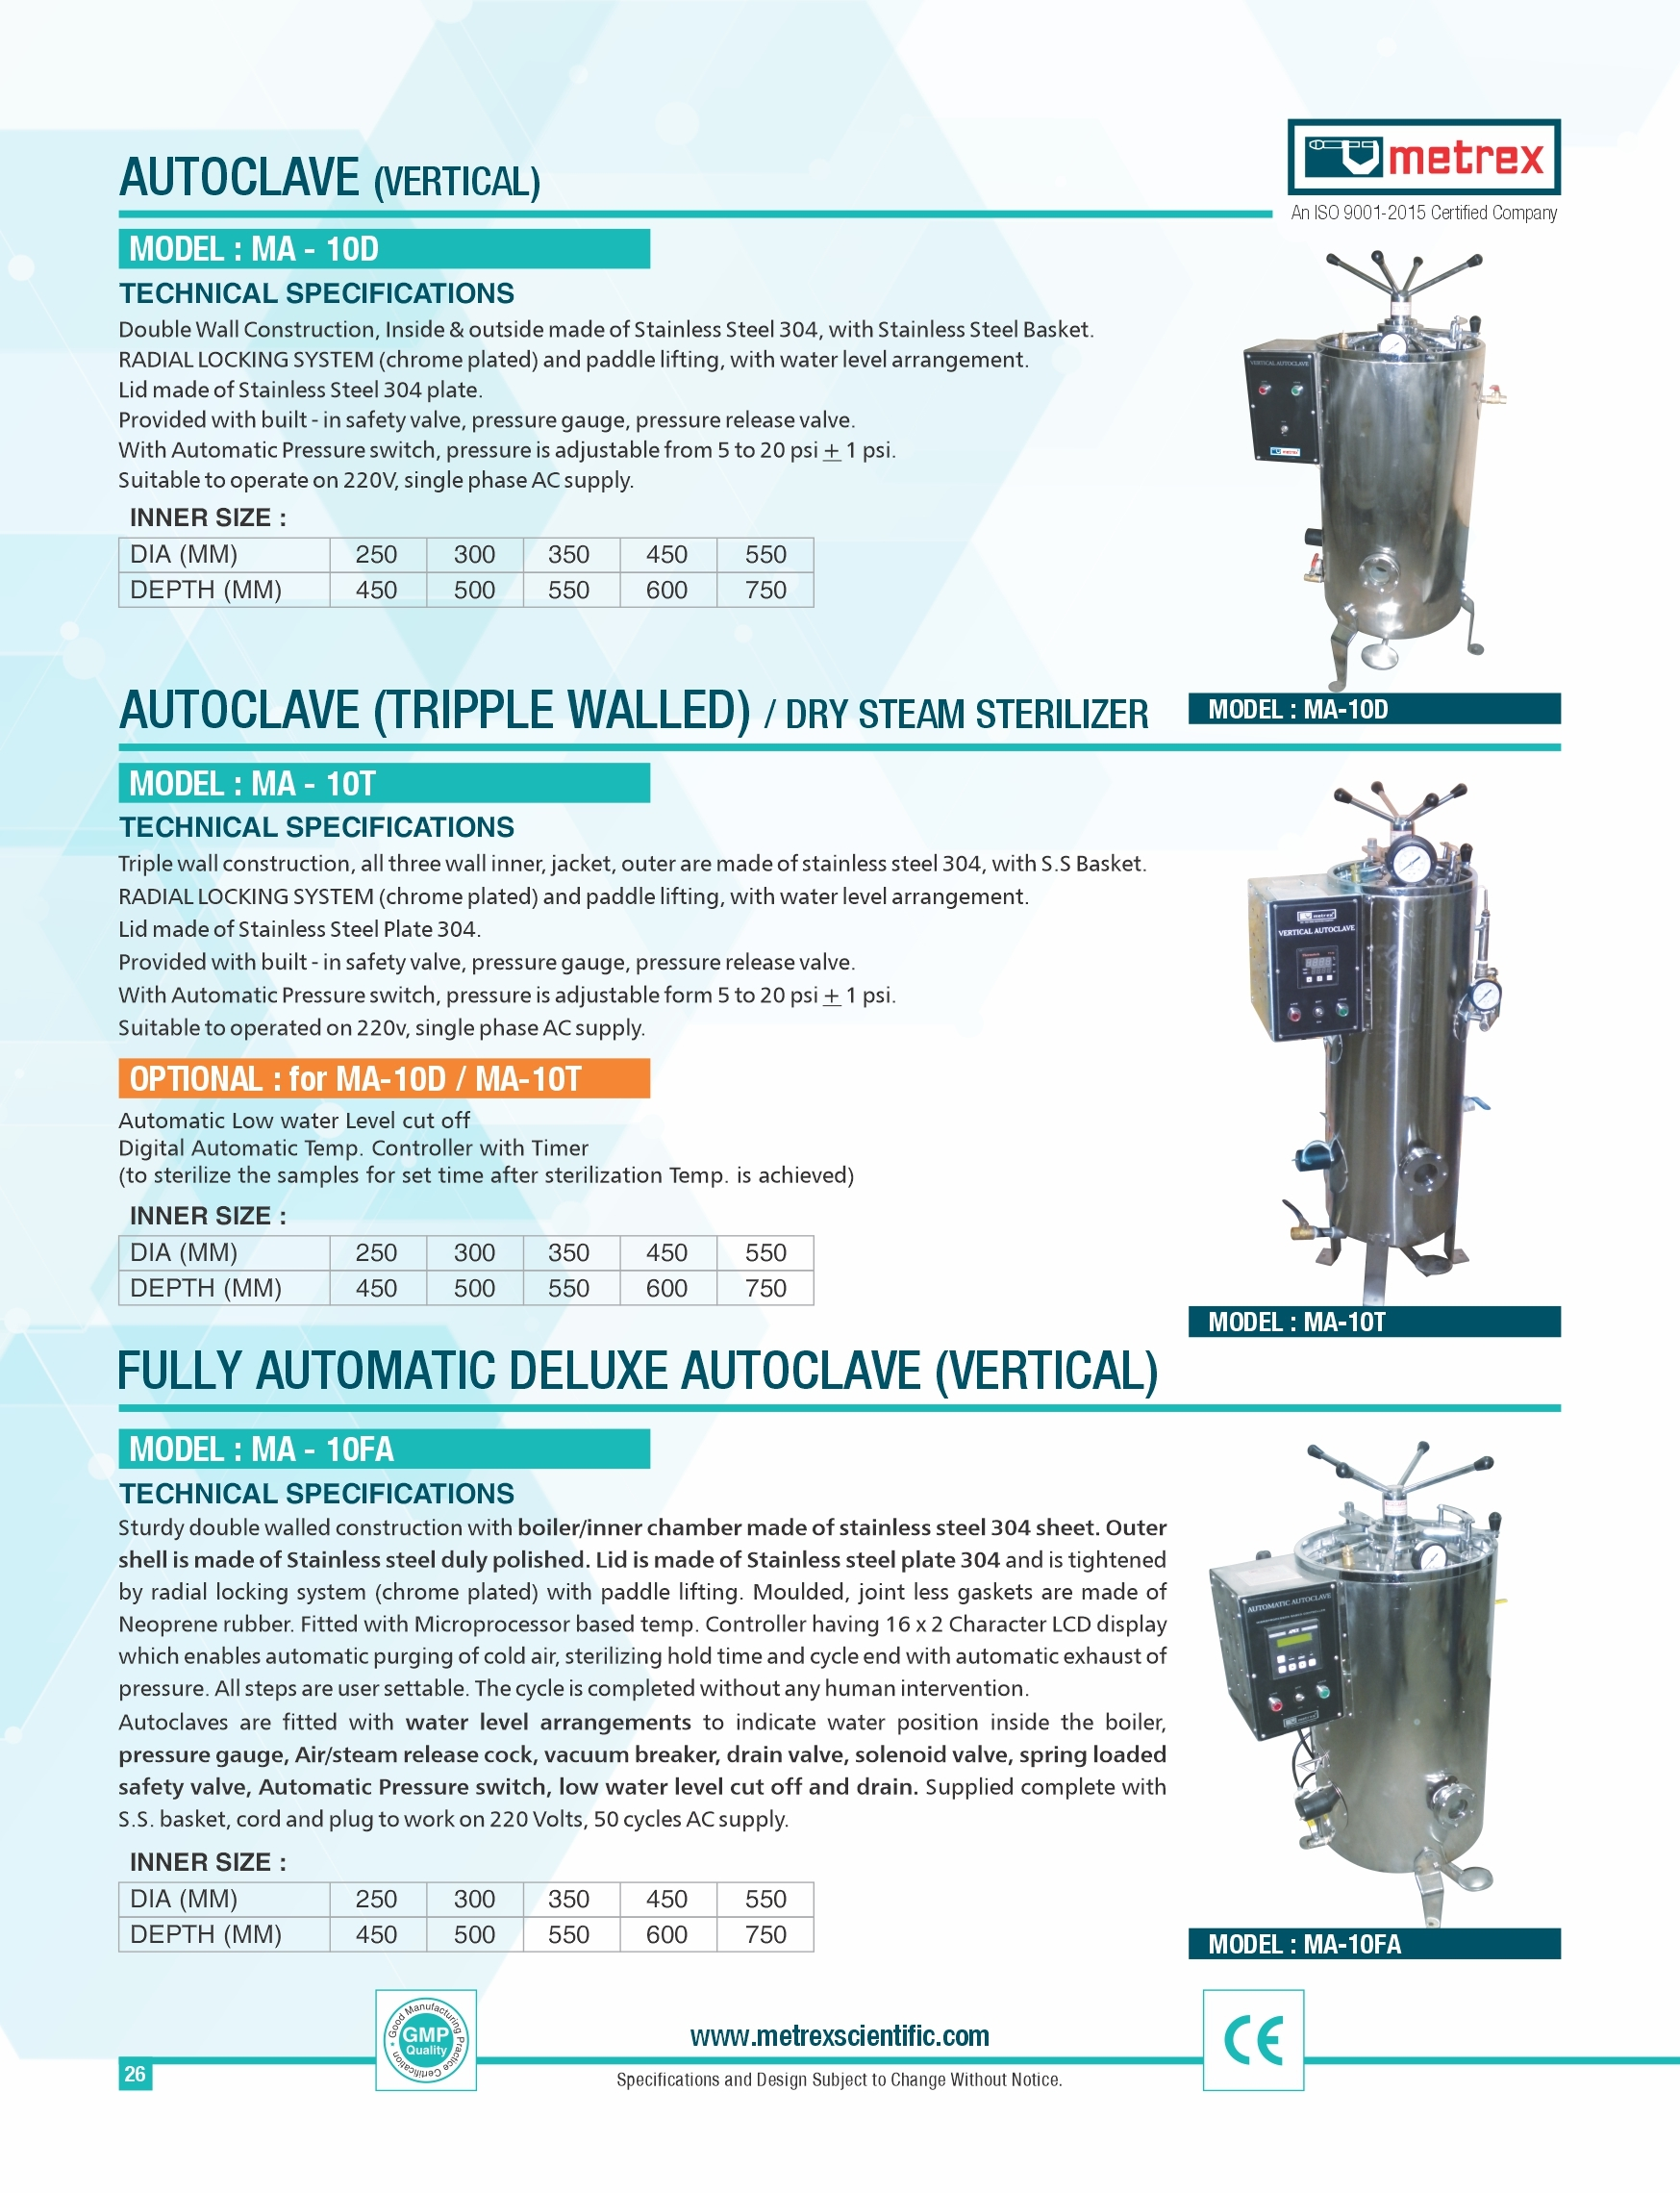 Fully Automatic Deluxe Autoclave ( Vertical )